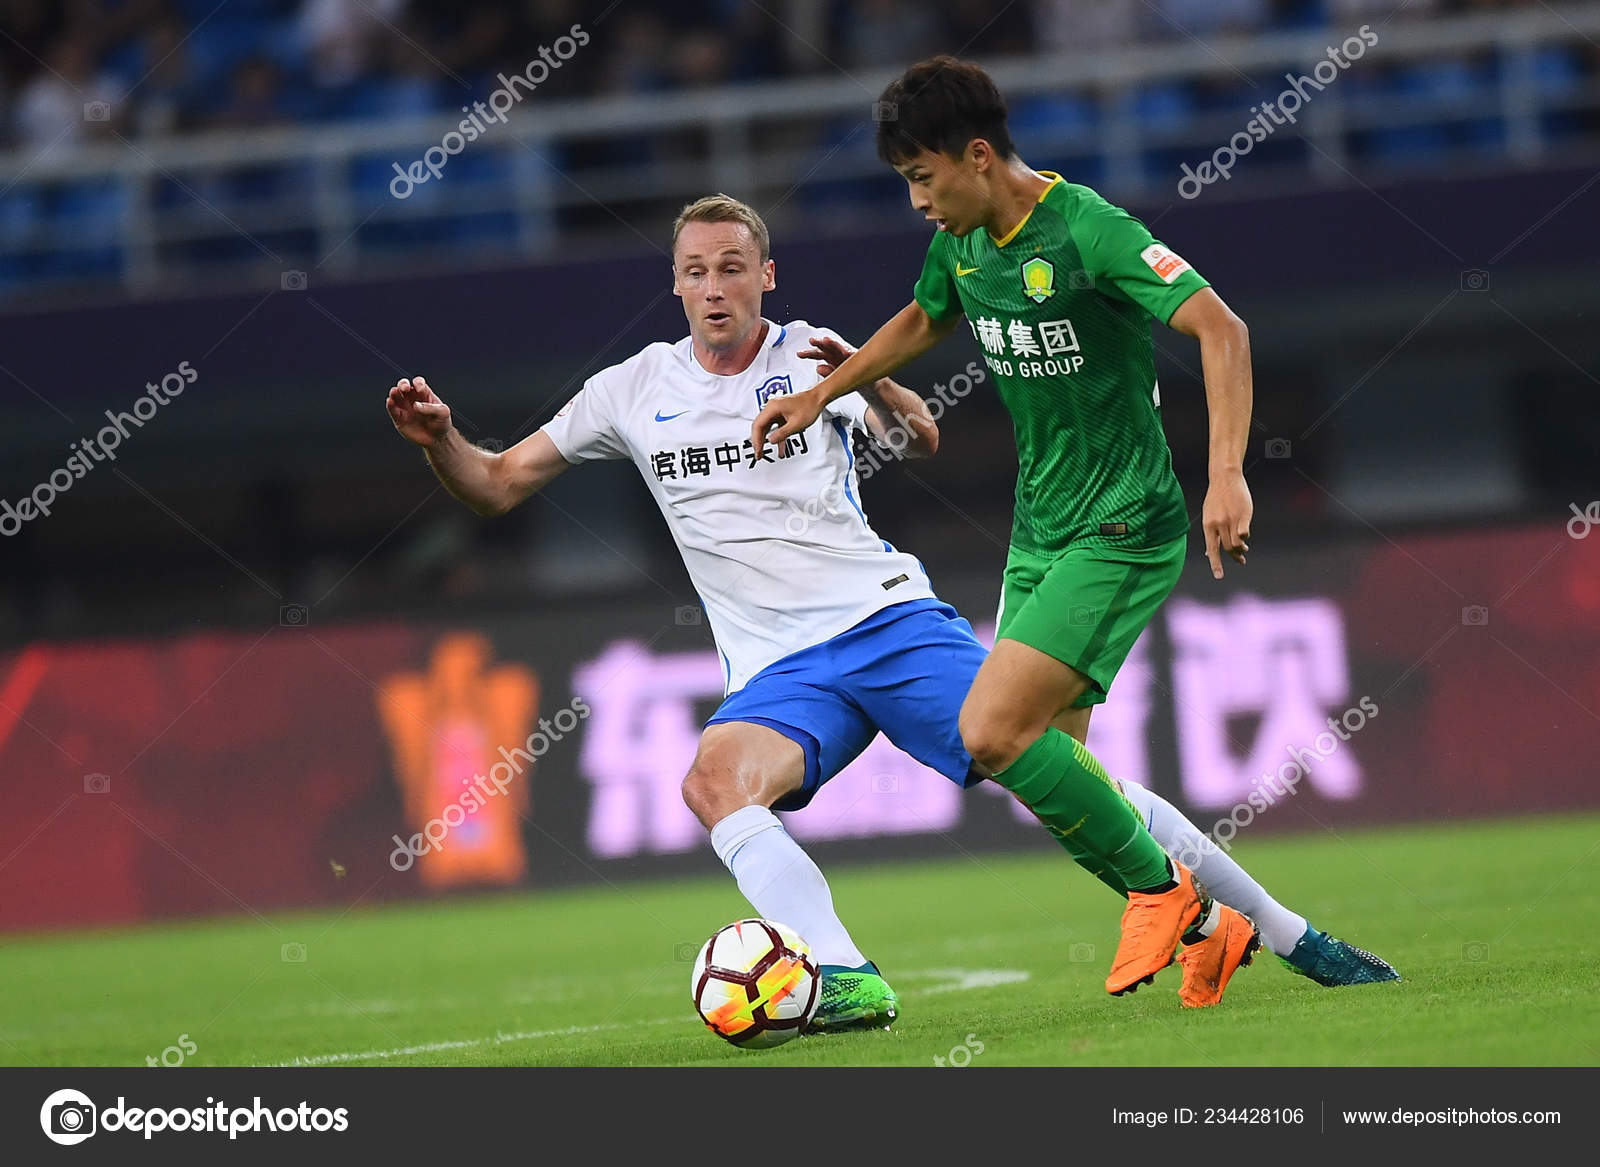 141c88cc7 ... TEDA passes the ball against a player of Beijing Sinobo Guoan in their  20th round match during the 2018 Chinese Football Association Super League  ...